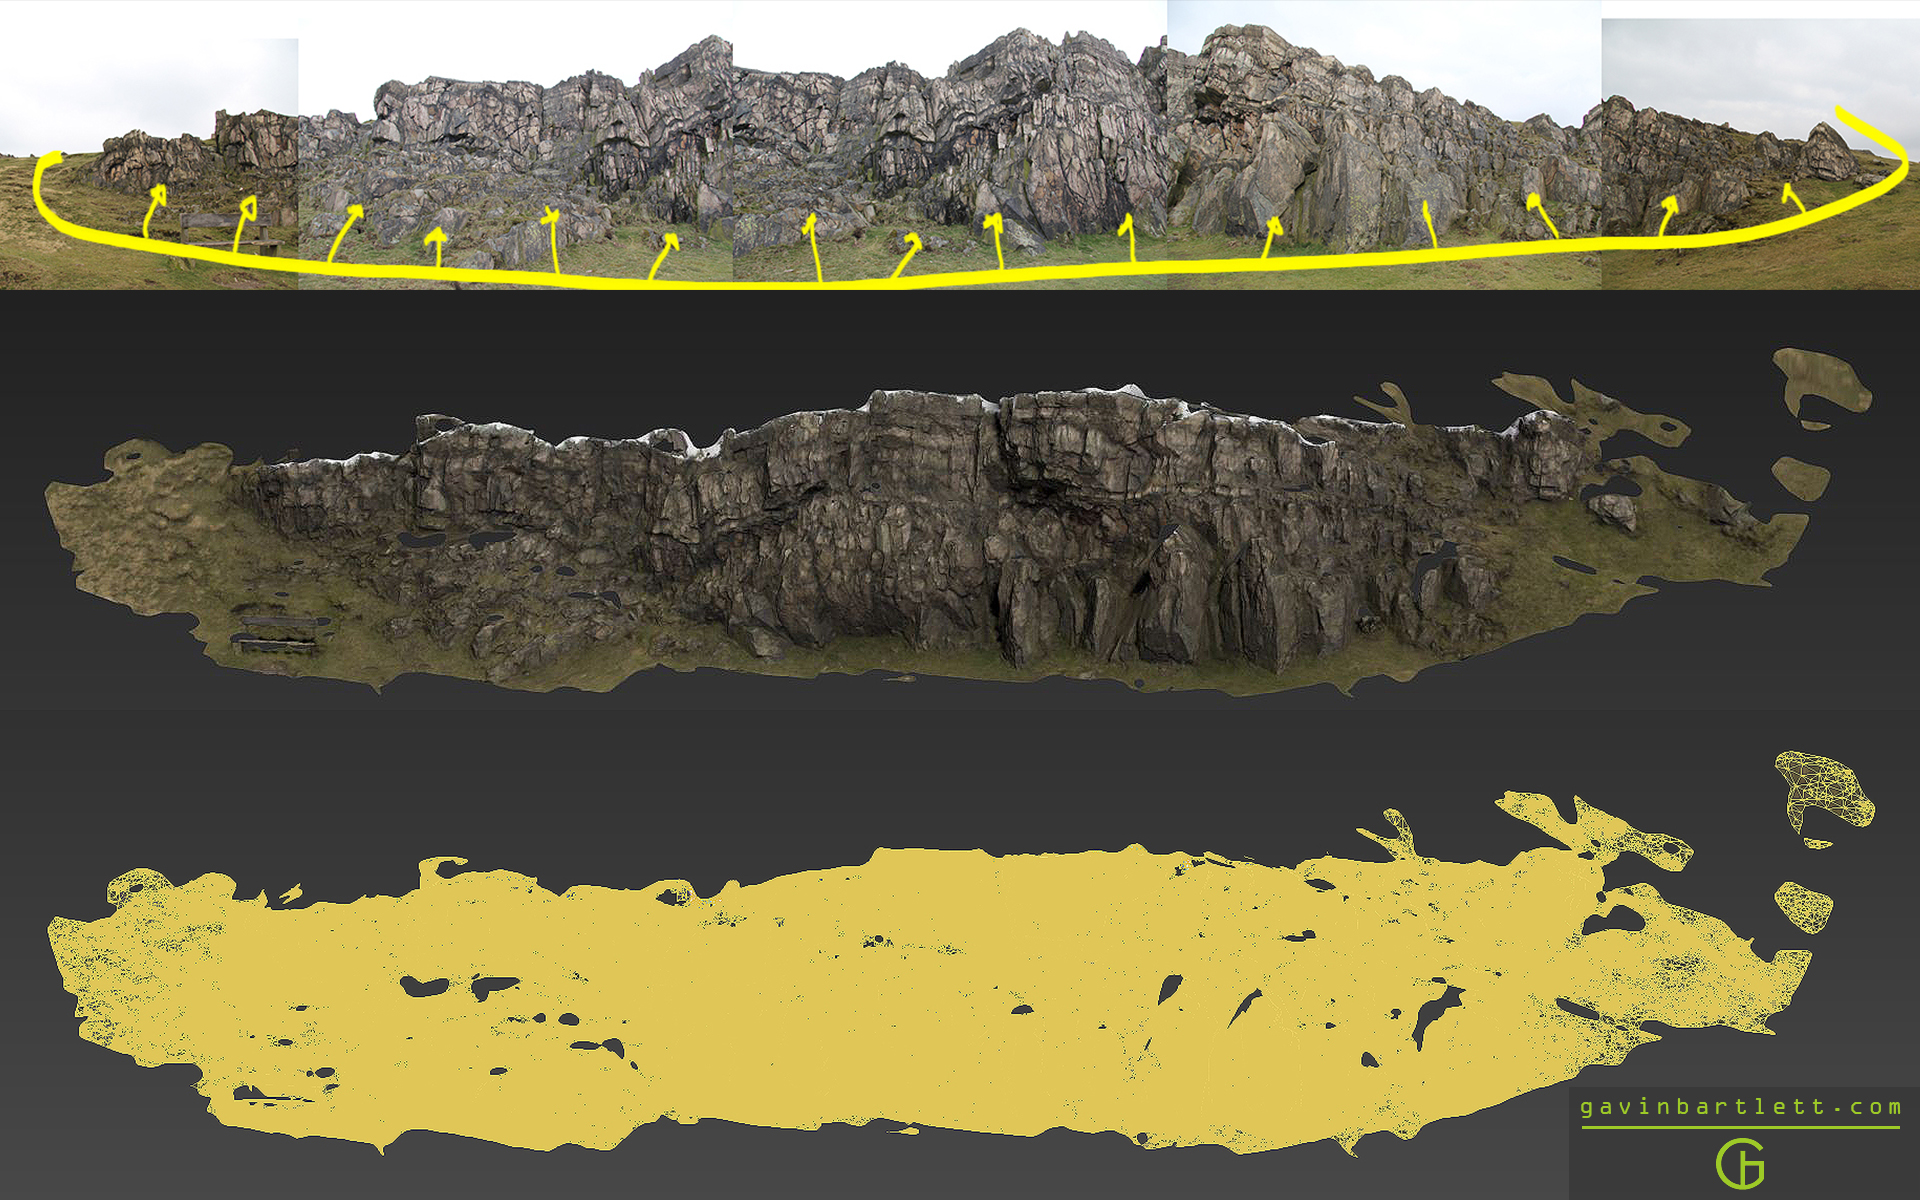 GavinBartlett_Photogrammetry_001